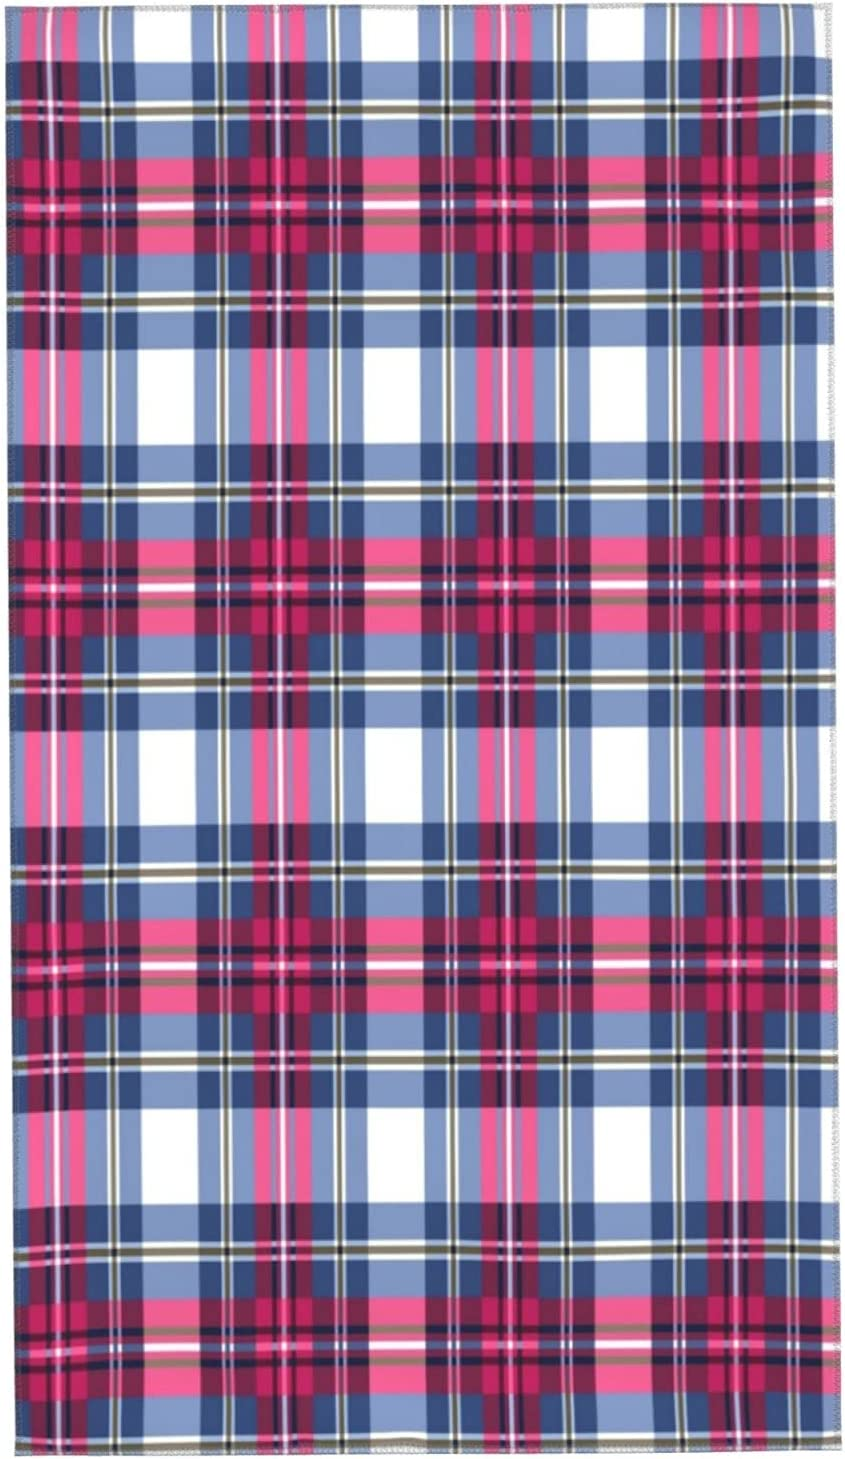 GUVICINIR Hand trend rank Towels for Bathroom Set Plaid Patte of Abstract A surprise price is realized 2